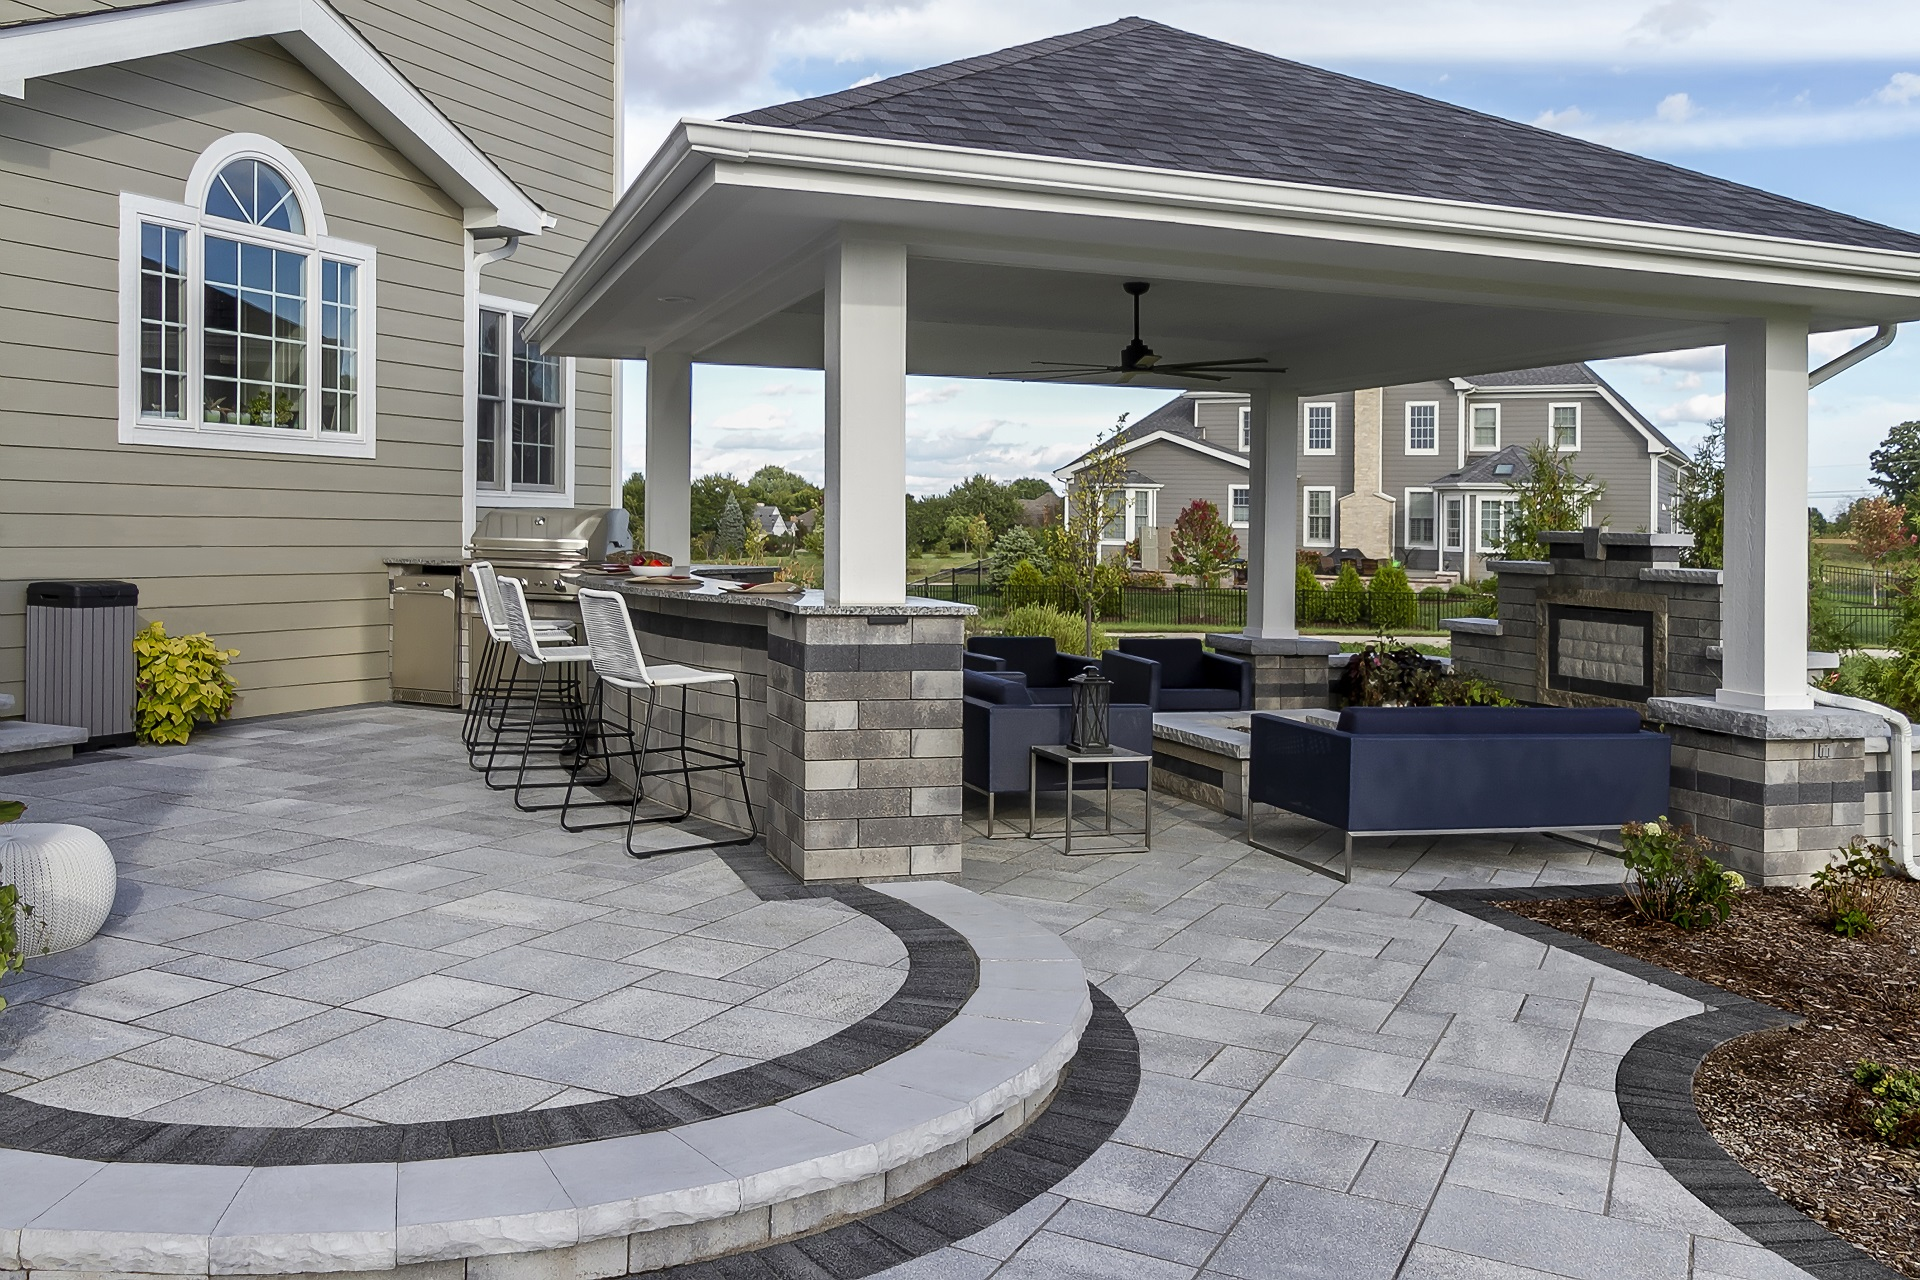 Outdoor kitchen in Rochester Hills, MI with top brick pavers